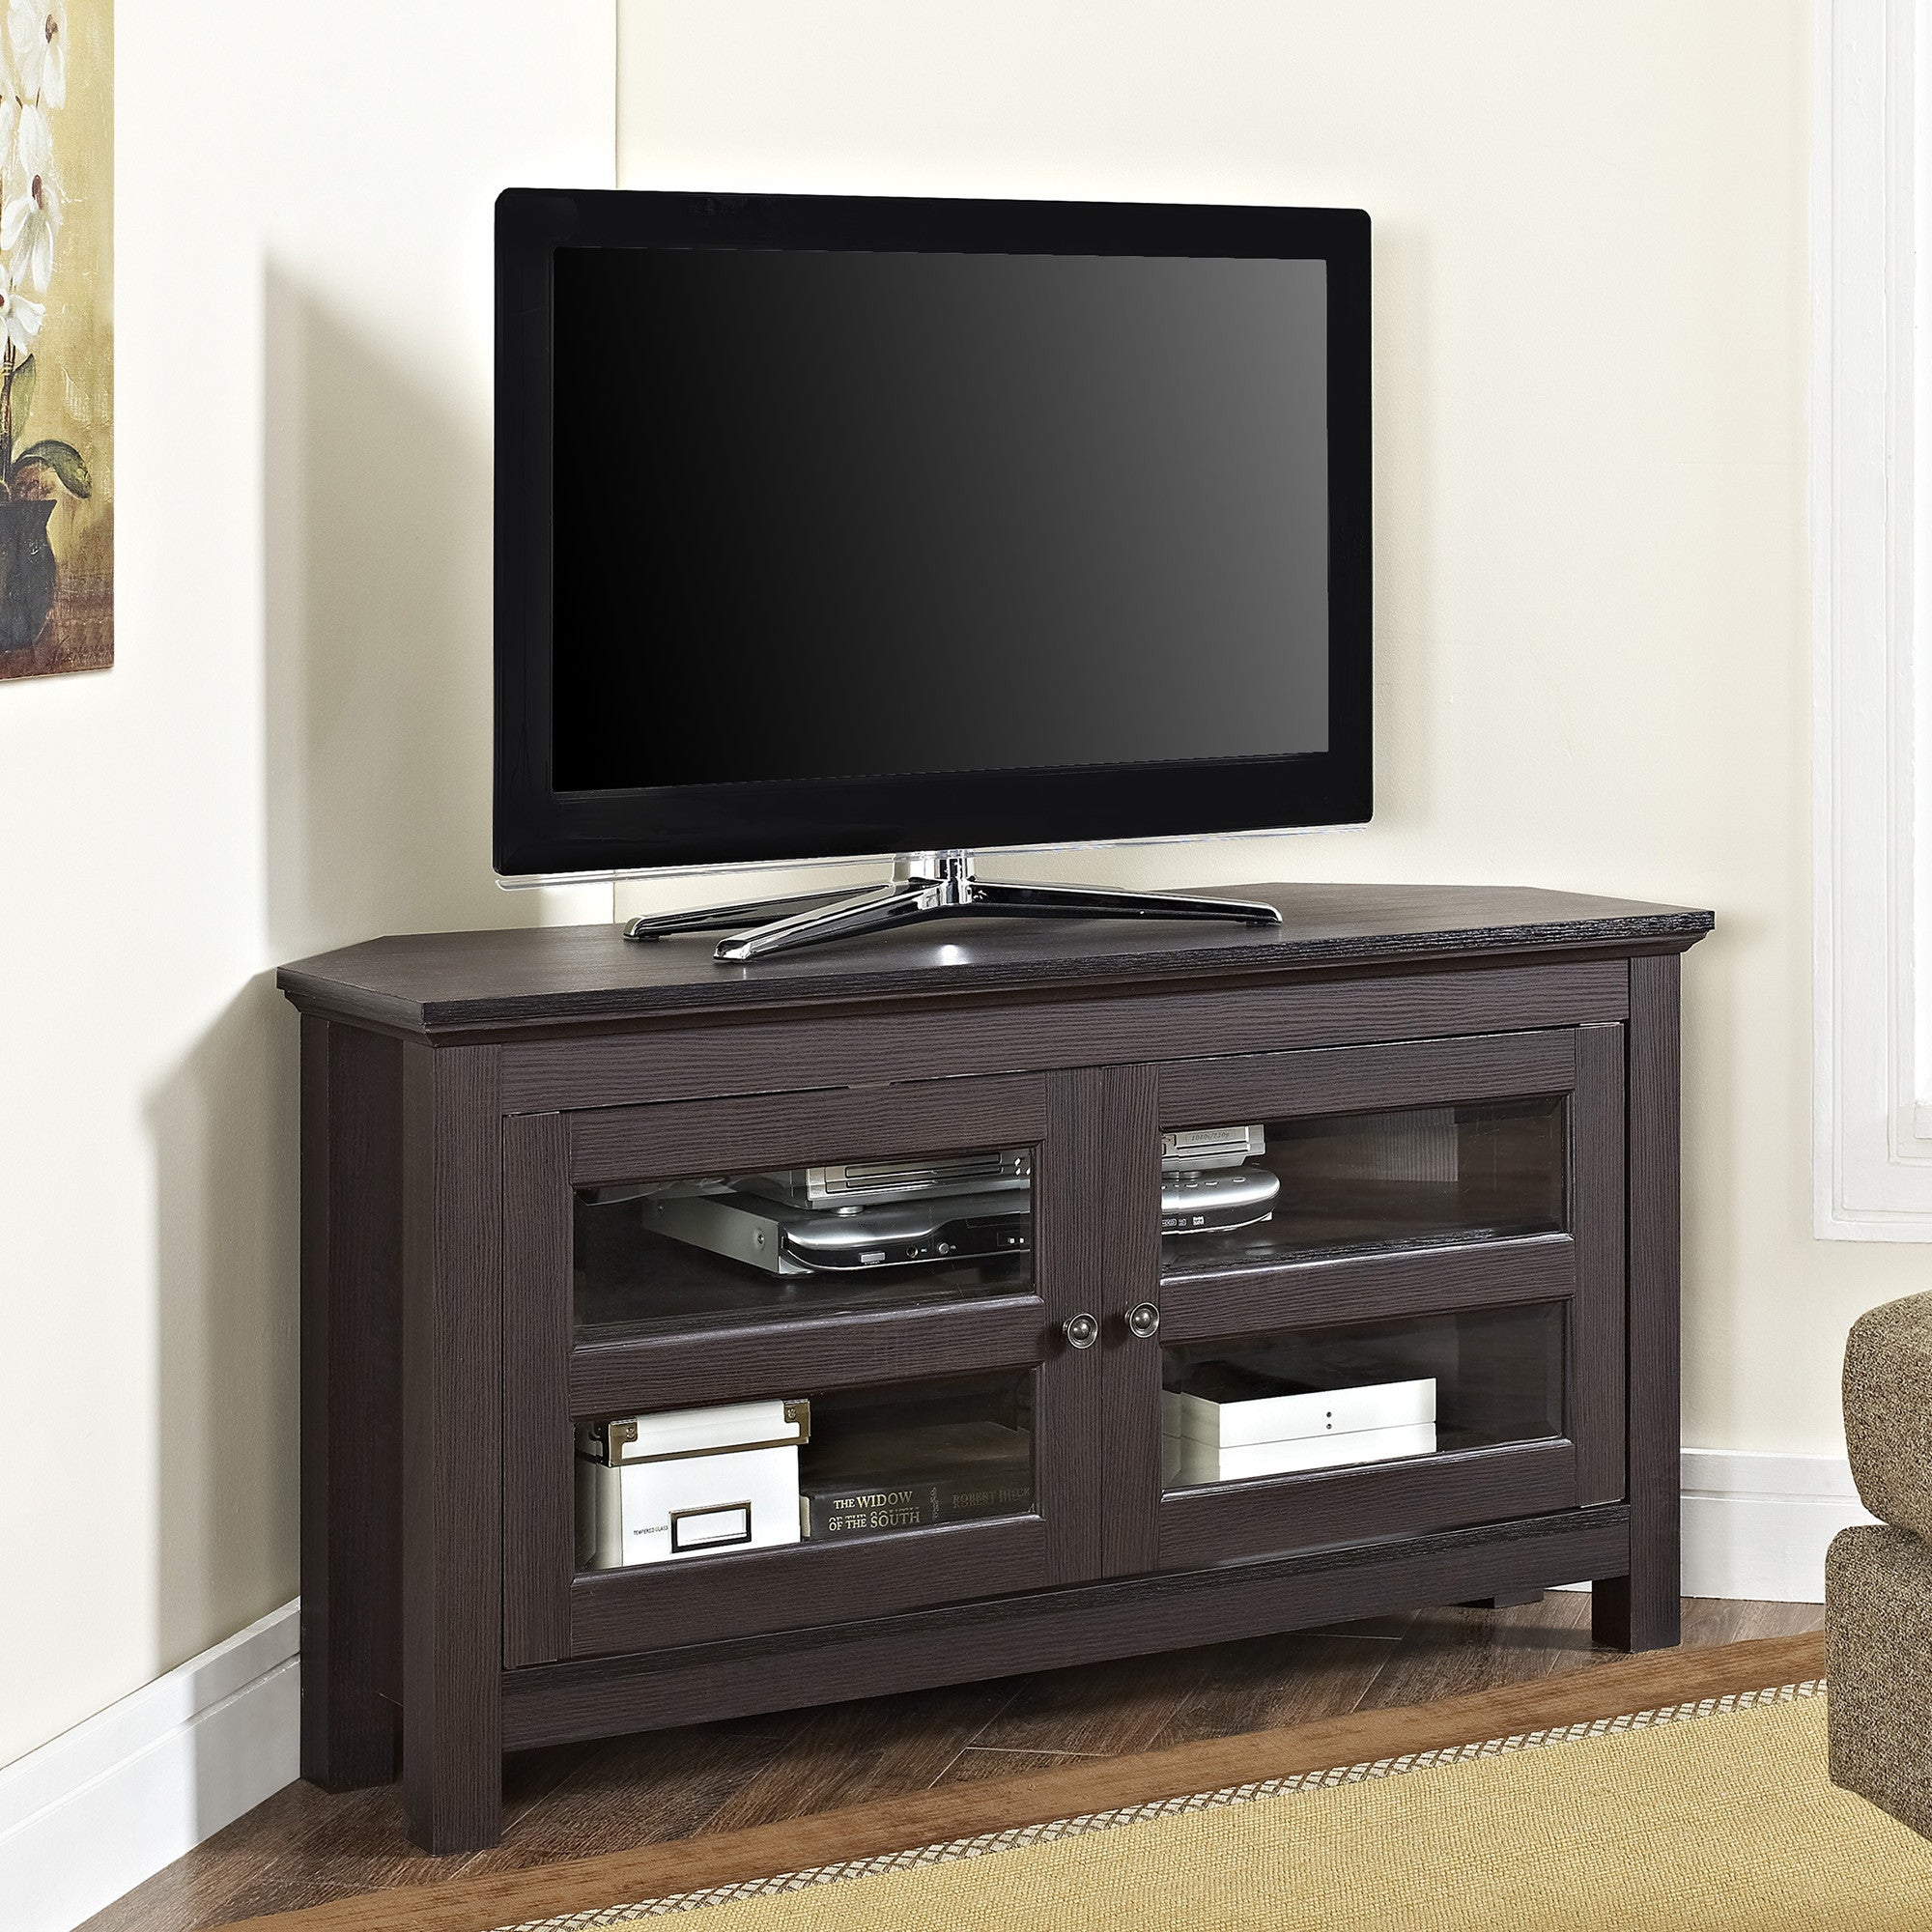 Modern Espresso Corner TV Stand Console With Glass Cabinet